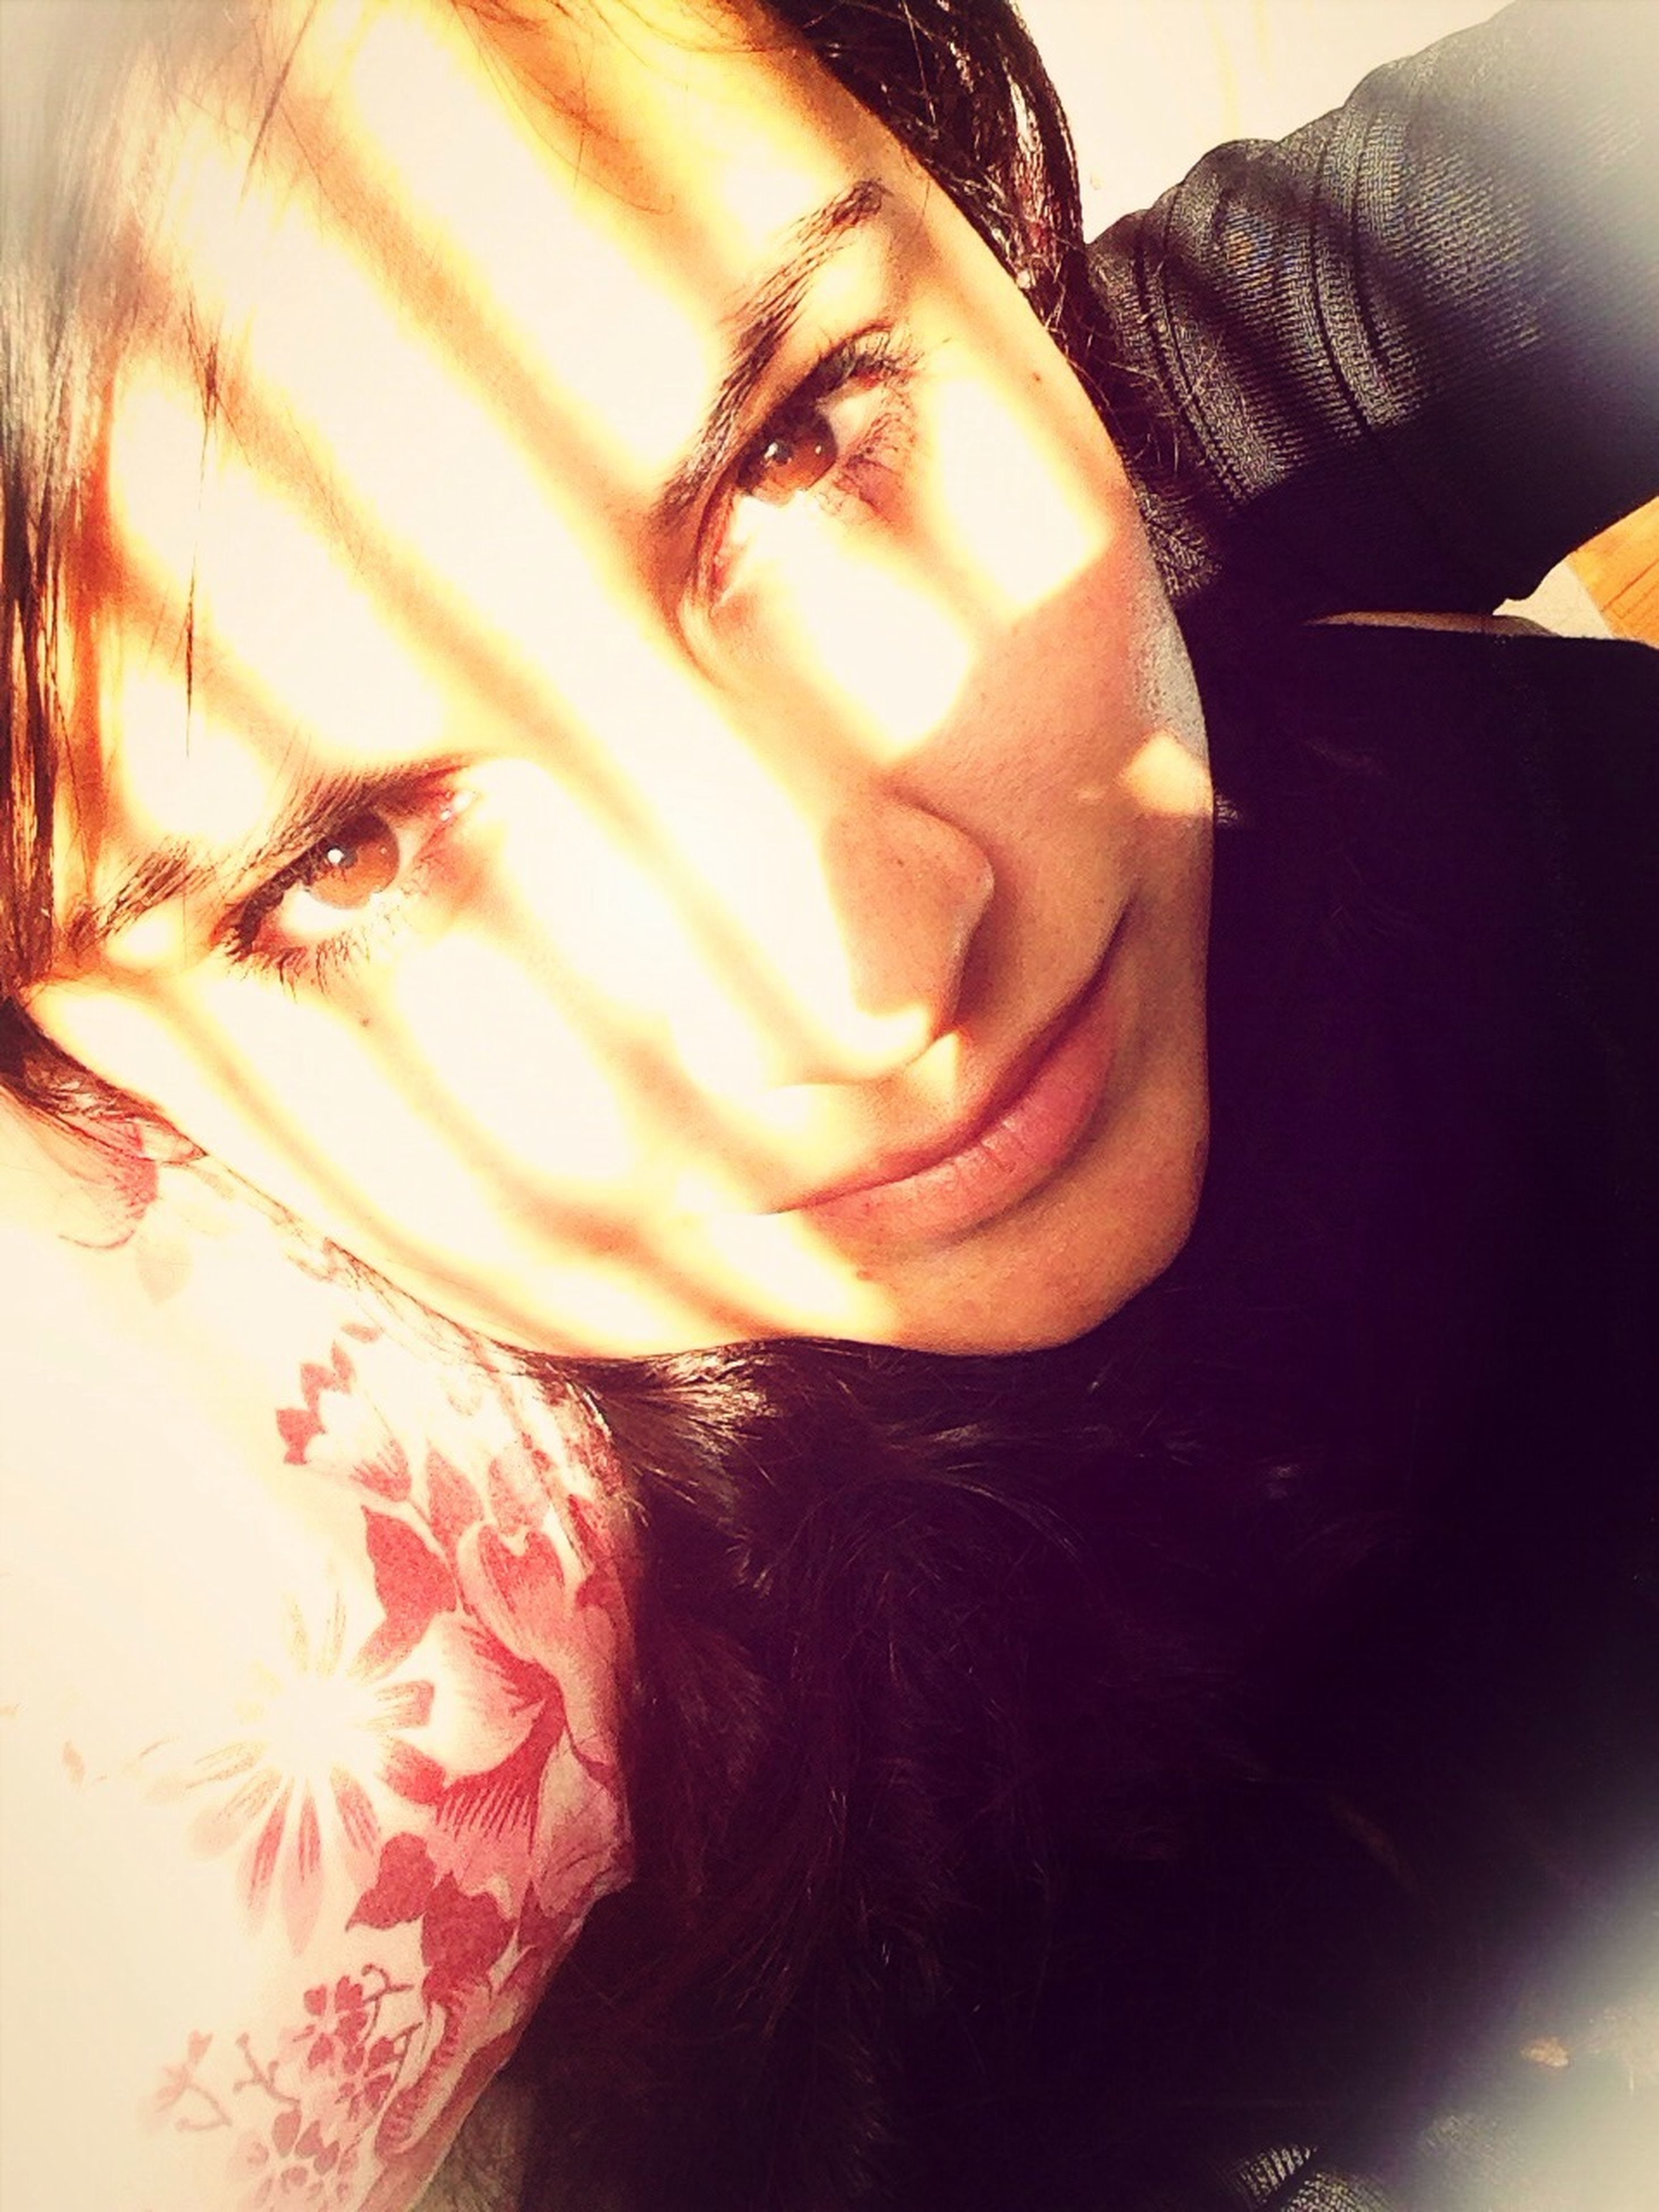 indoors, person, close-up, part of, lifestyles, holding, cropped, leisure activity, reflection, unrecognizable person, sunlight, sweet food, table, high angle view, human finger, celebration